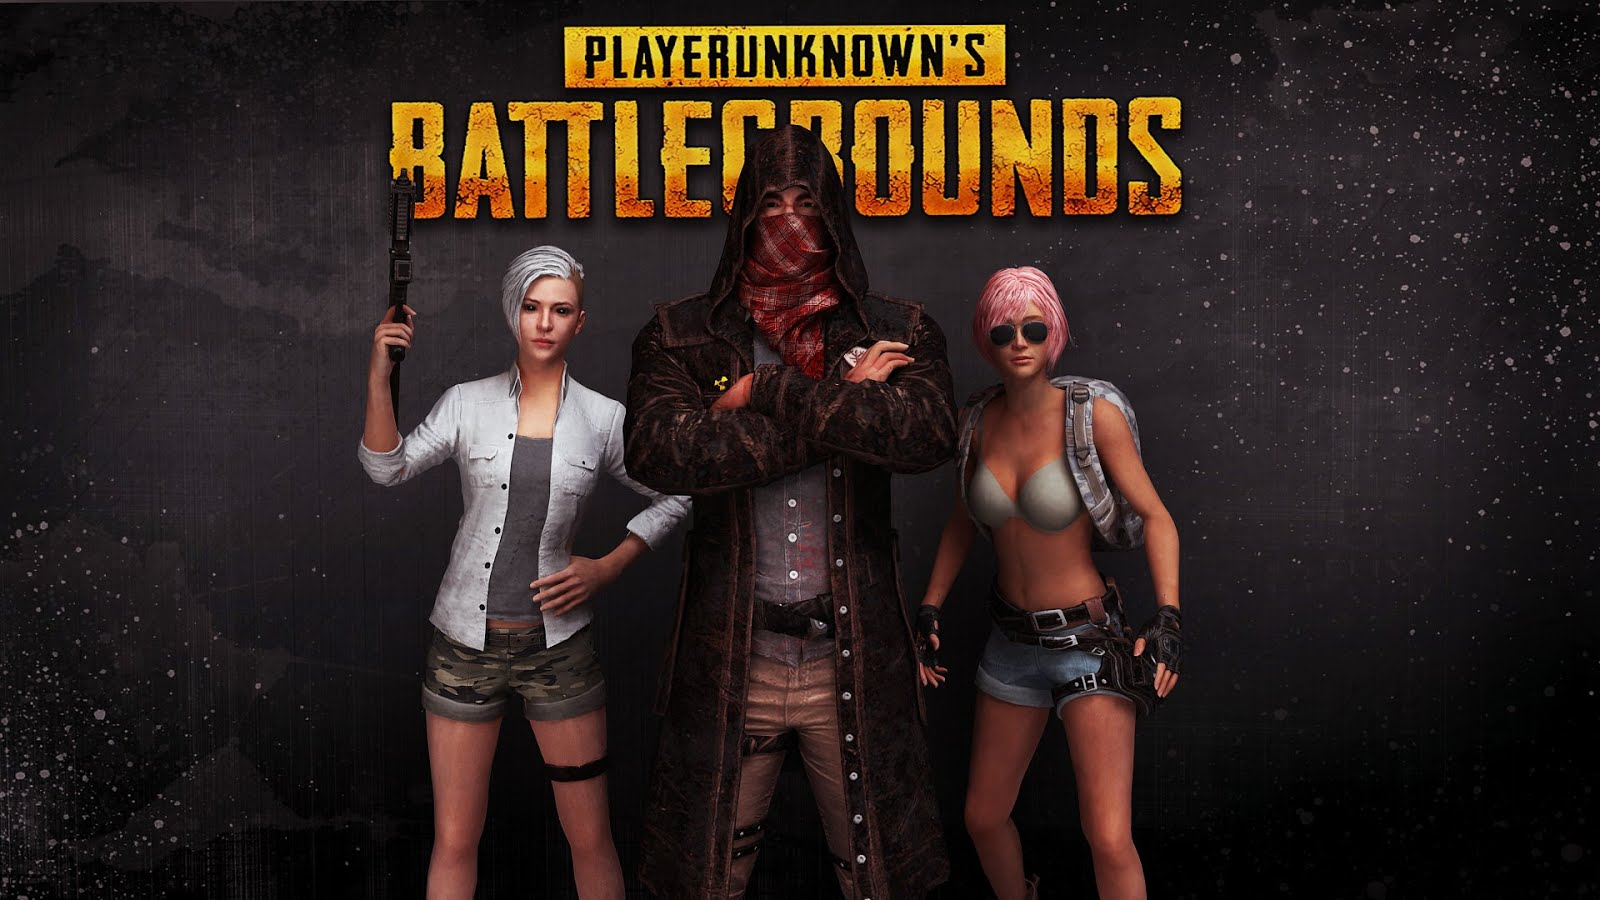 pubg,pubg mobile,pubg mobile للكمبيوتر,pubg ios,pubg guns,pack pubg,pubg china,pubg corps,pubg gfx pack,pack gfx pubg,pubg android,pubg tencent,pubg drawing,gfx pack pubg,pubg bluehole,pubg mobile pc,pubg new video,pubg mobile hack,pubg ek game katha,ashish pubg video,pubg ios download,indian pubg video,pubg guns drawing,pubg gfx pack 2018,free pubg gfx pack,pubg gfx pack free